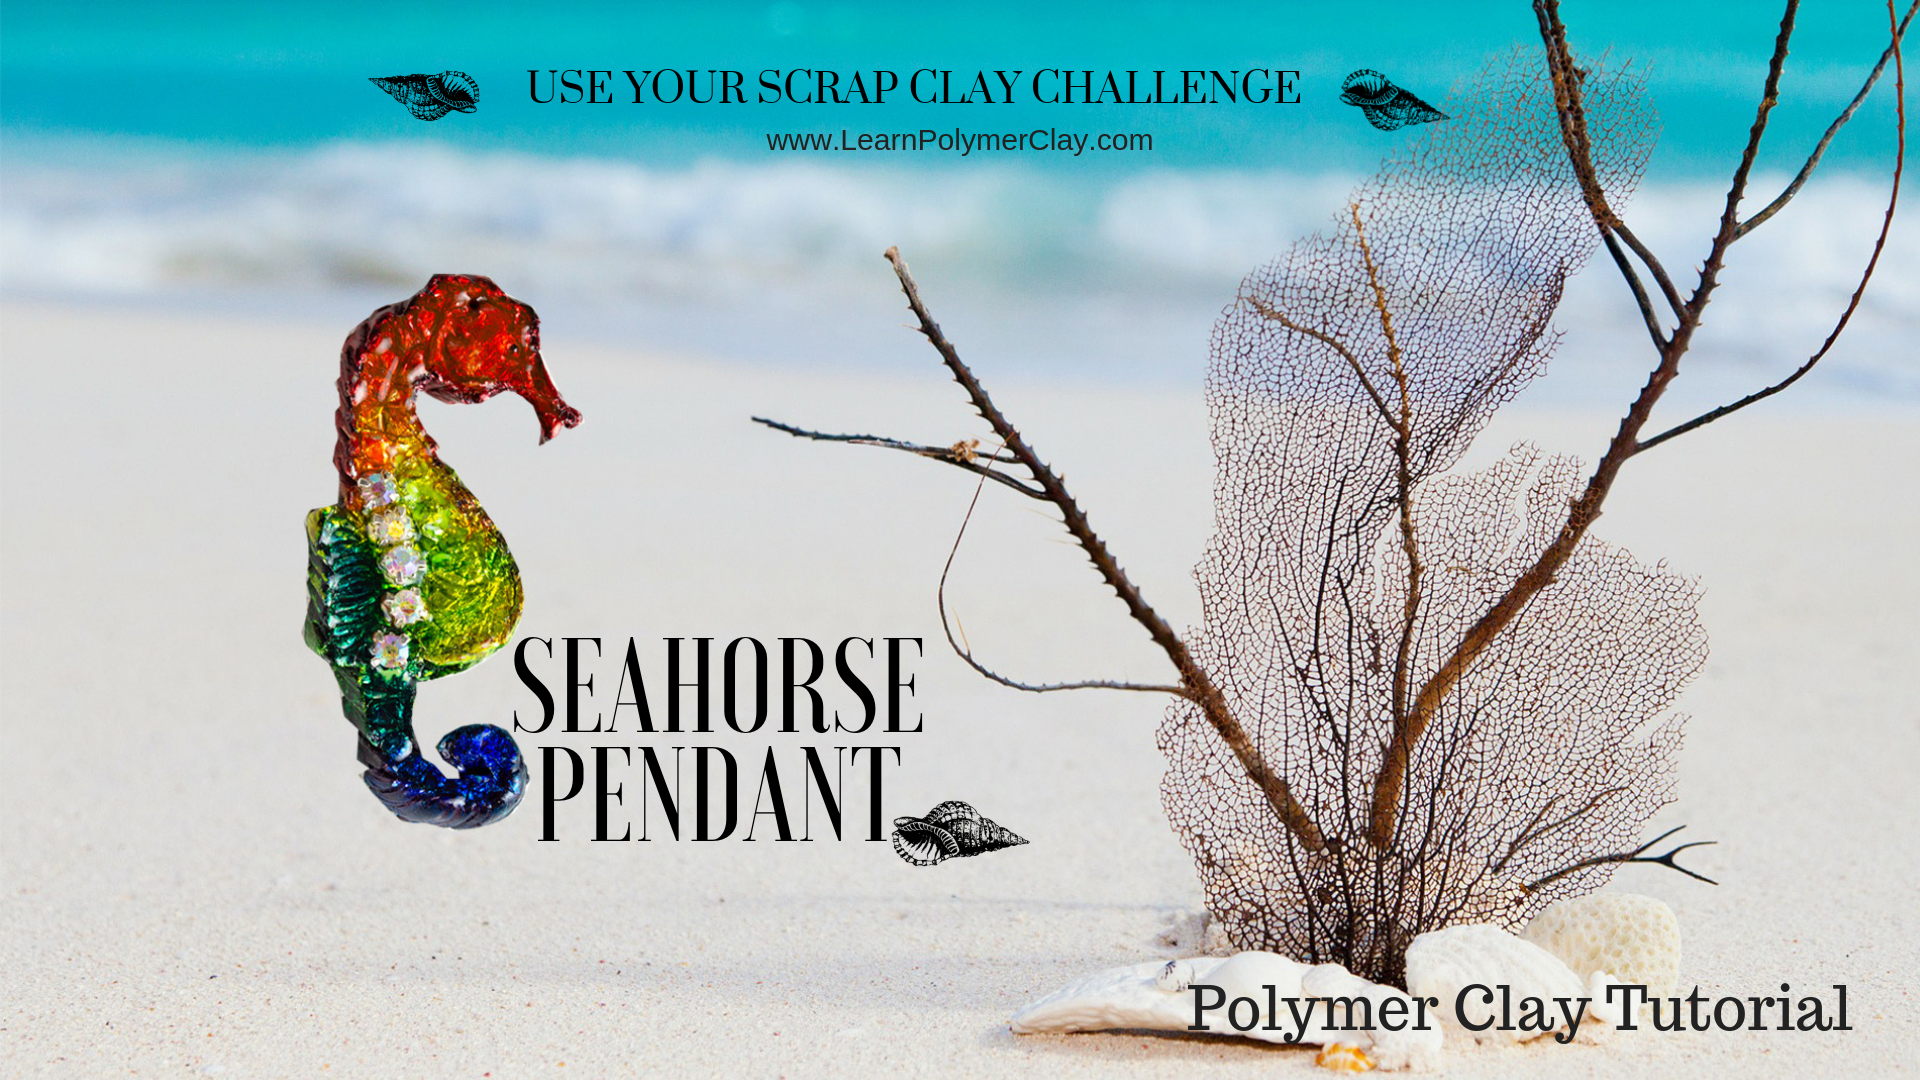 Seahorse polymer clay video tutorial - Use your scrap clay challenge